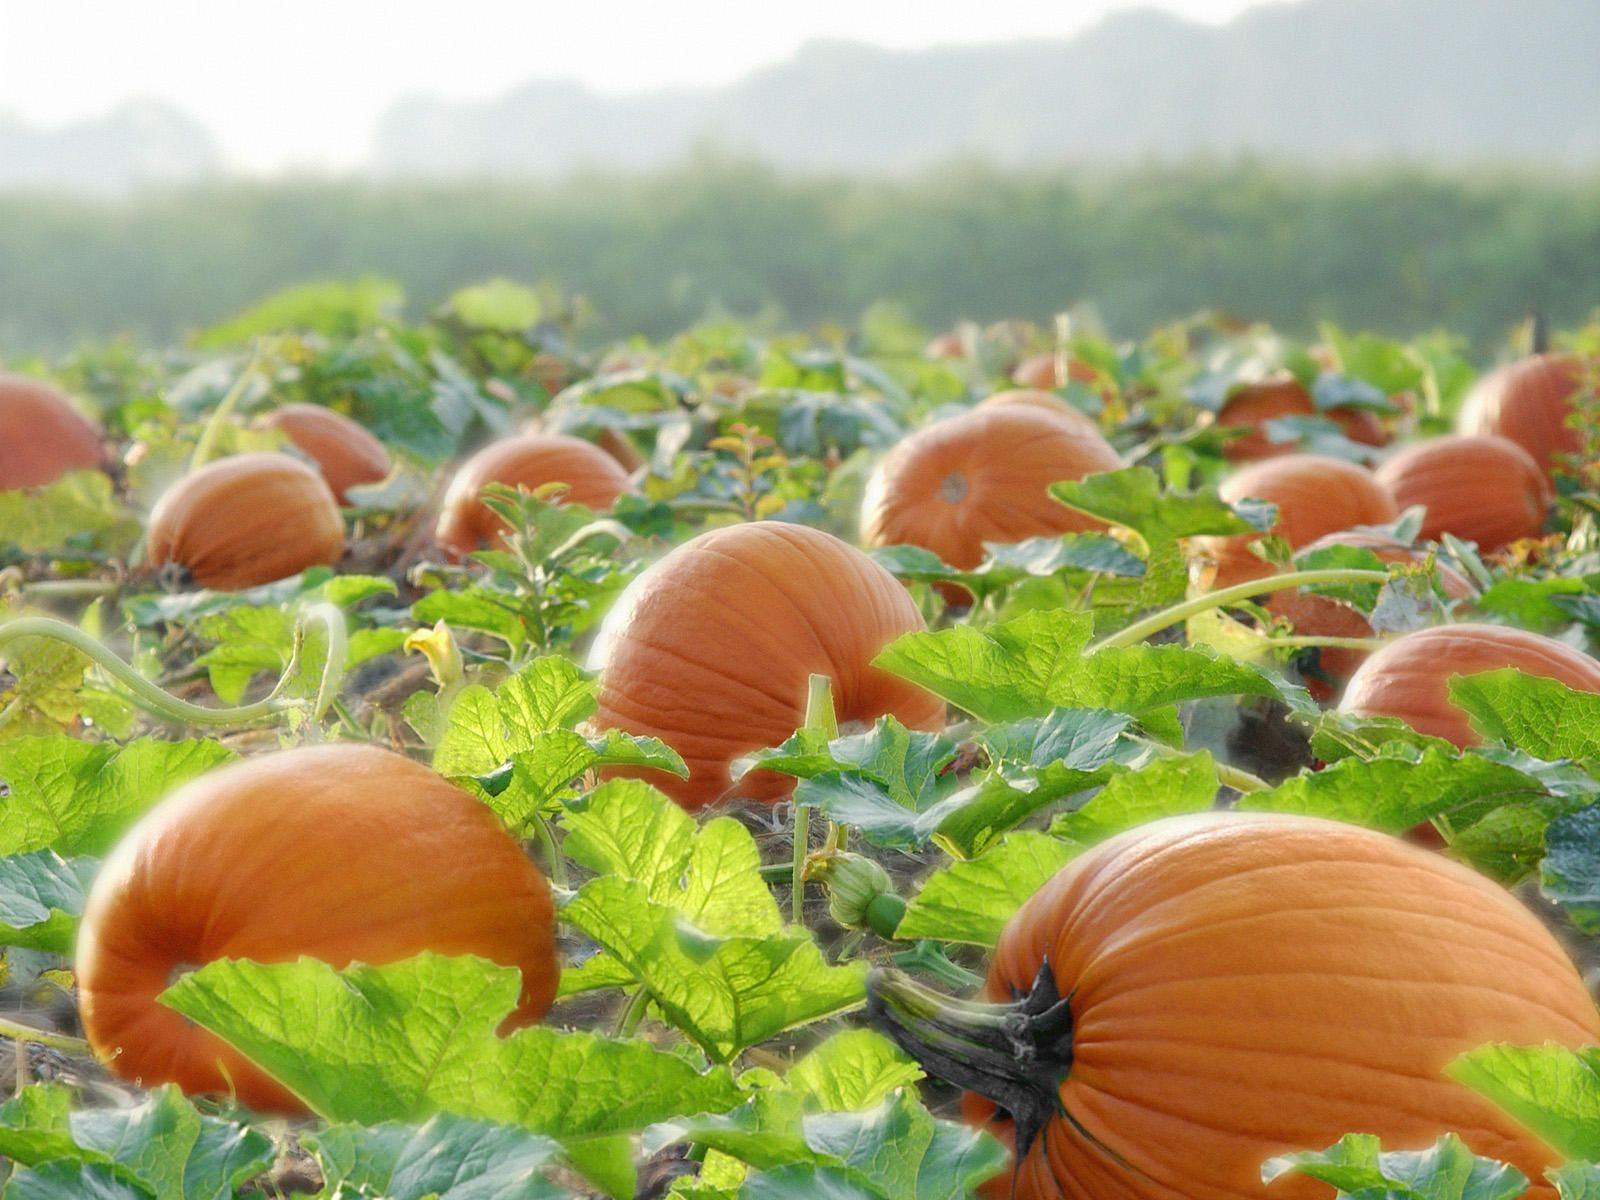 Image Detail for Photography Pumpkins Ready to Harvest